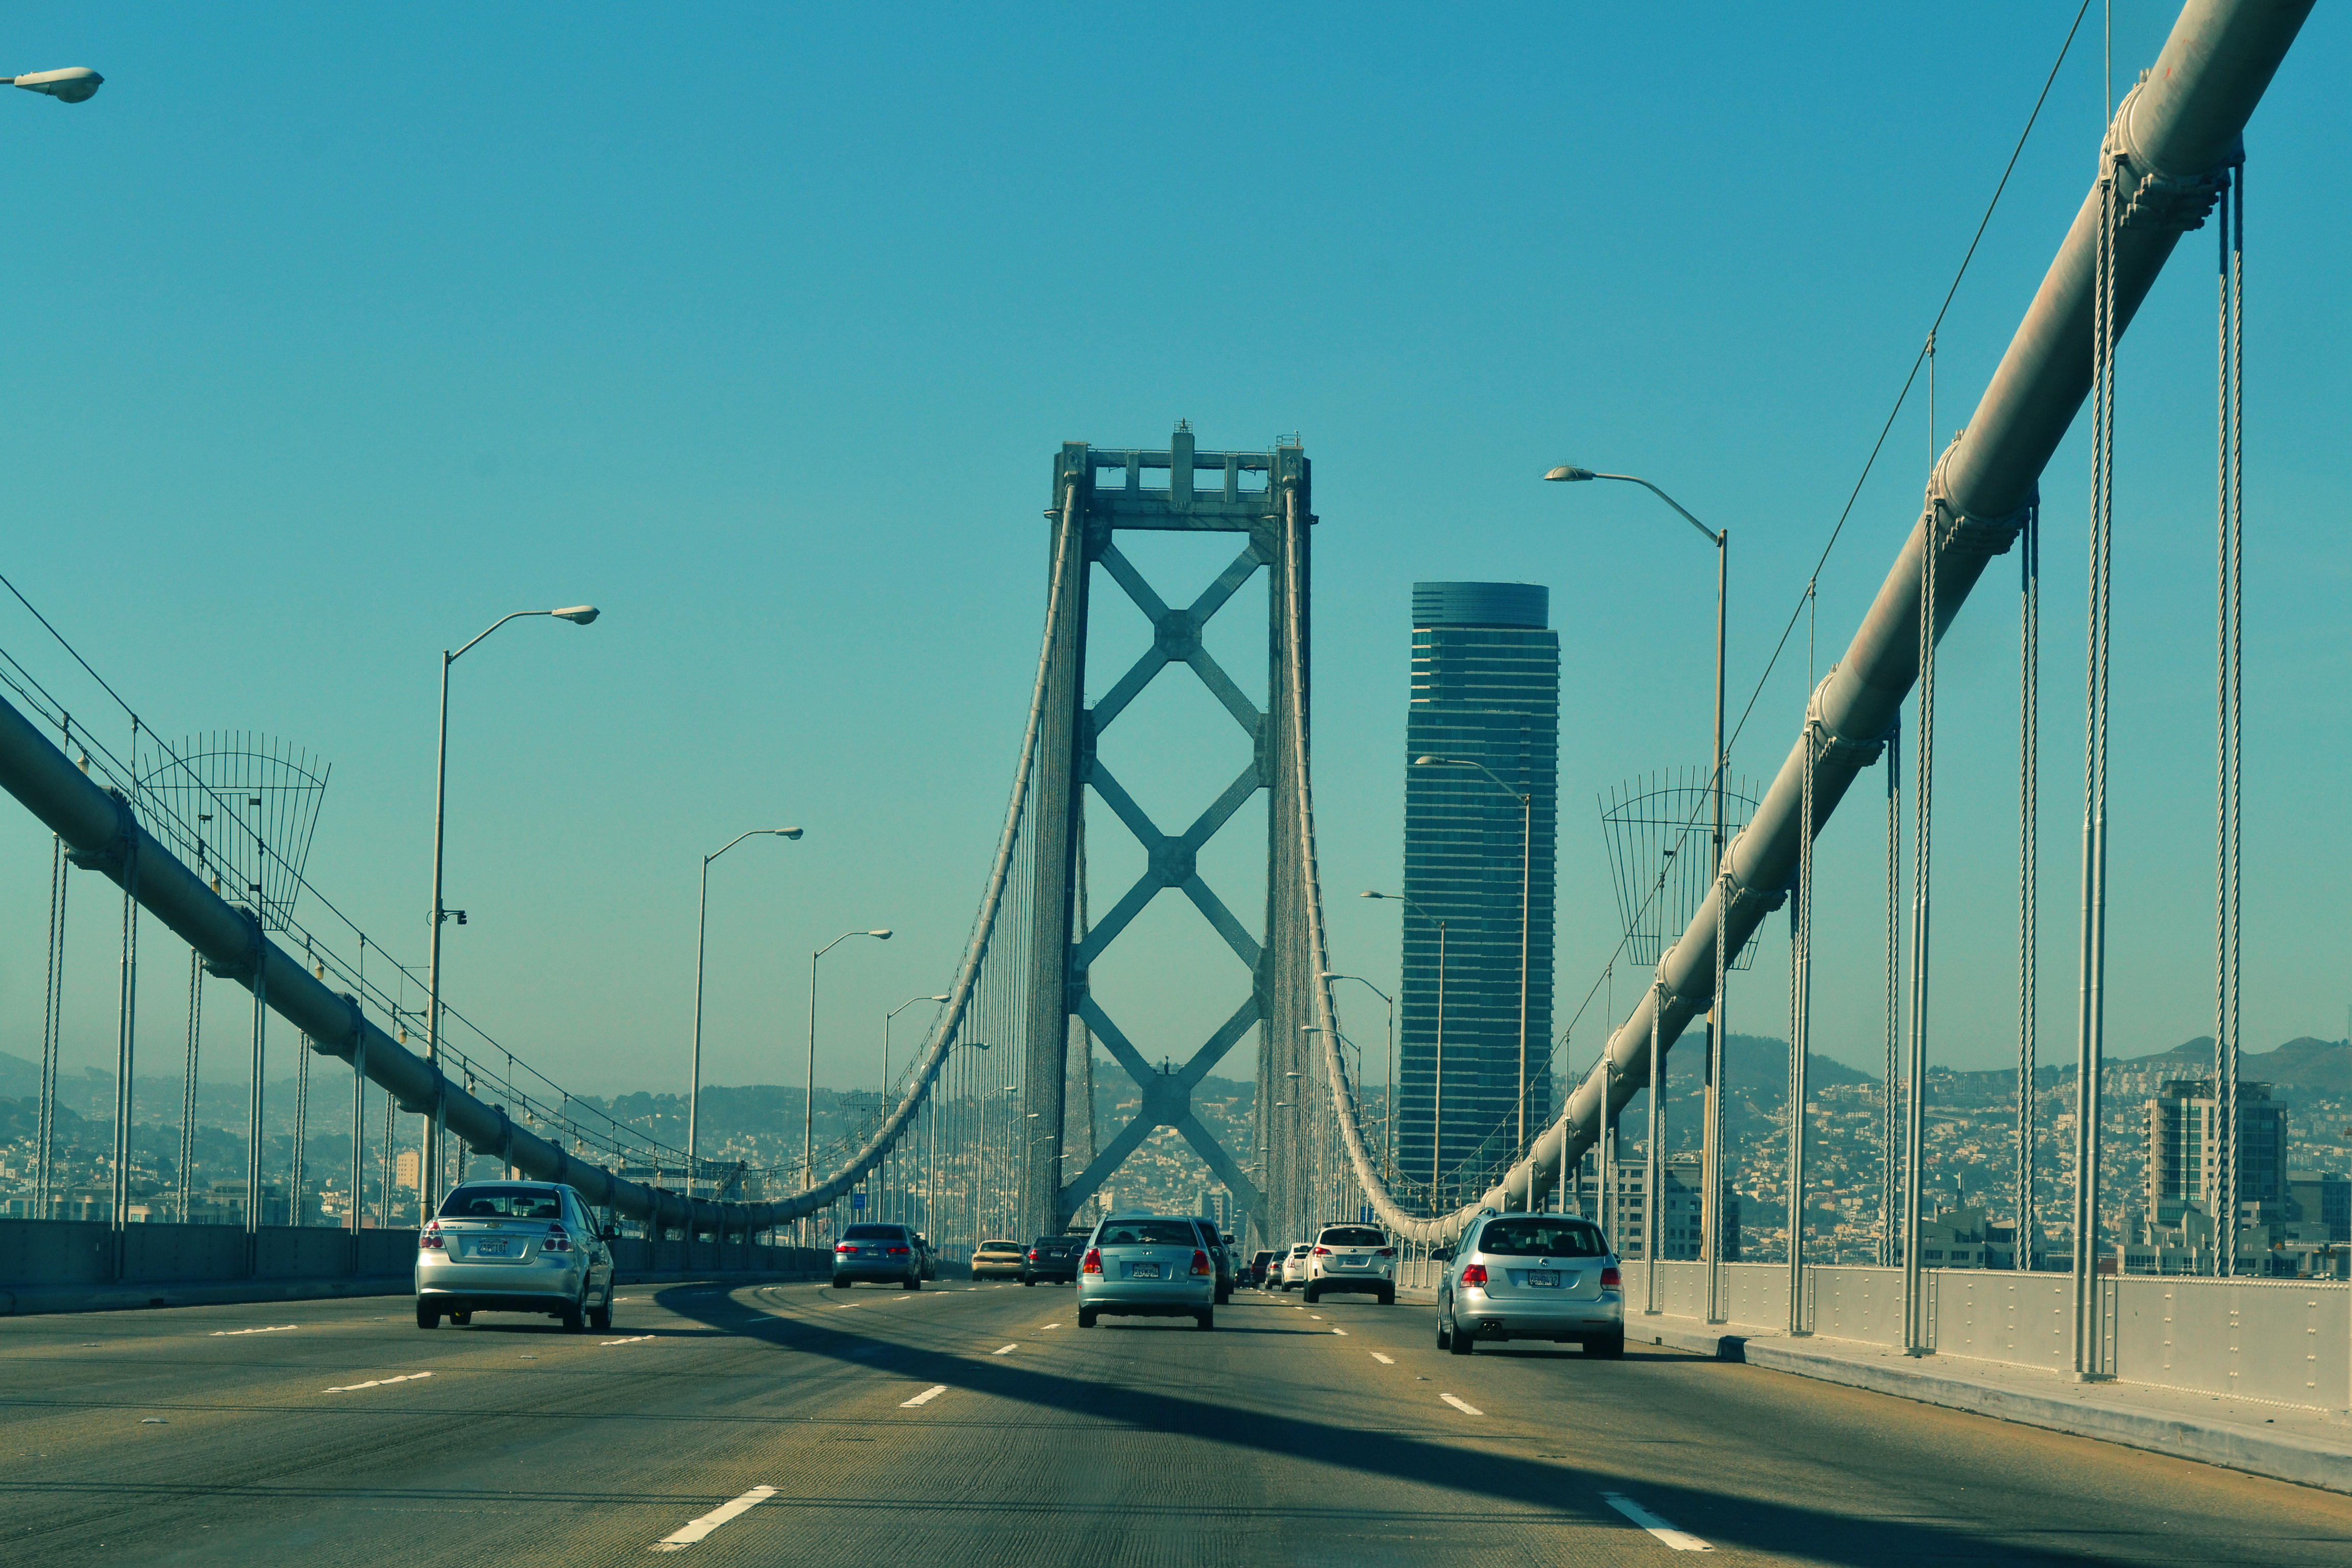 Large Size Wallpapers Of Cars Free Stock Photo Of Bridge Cars Driving